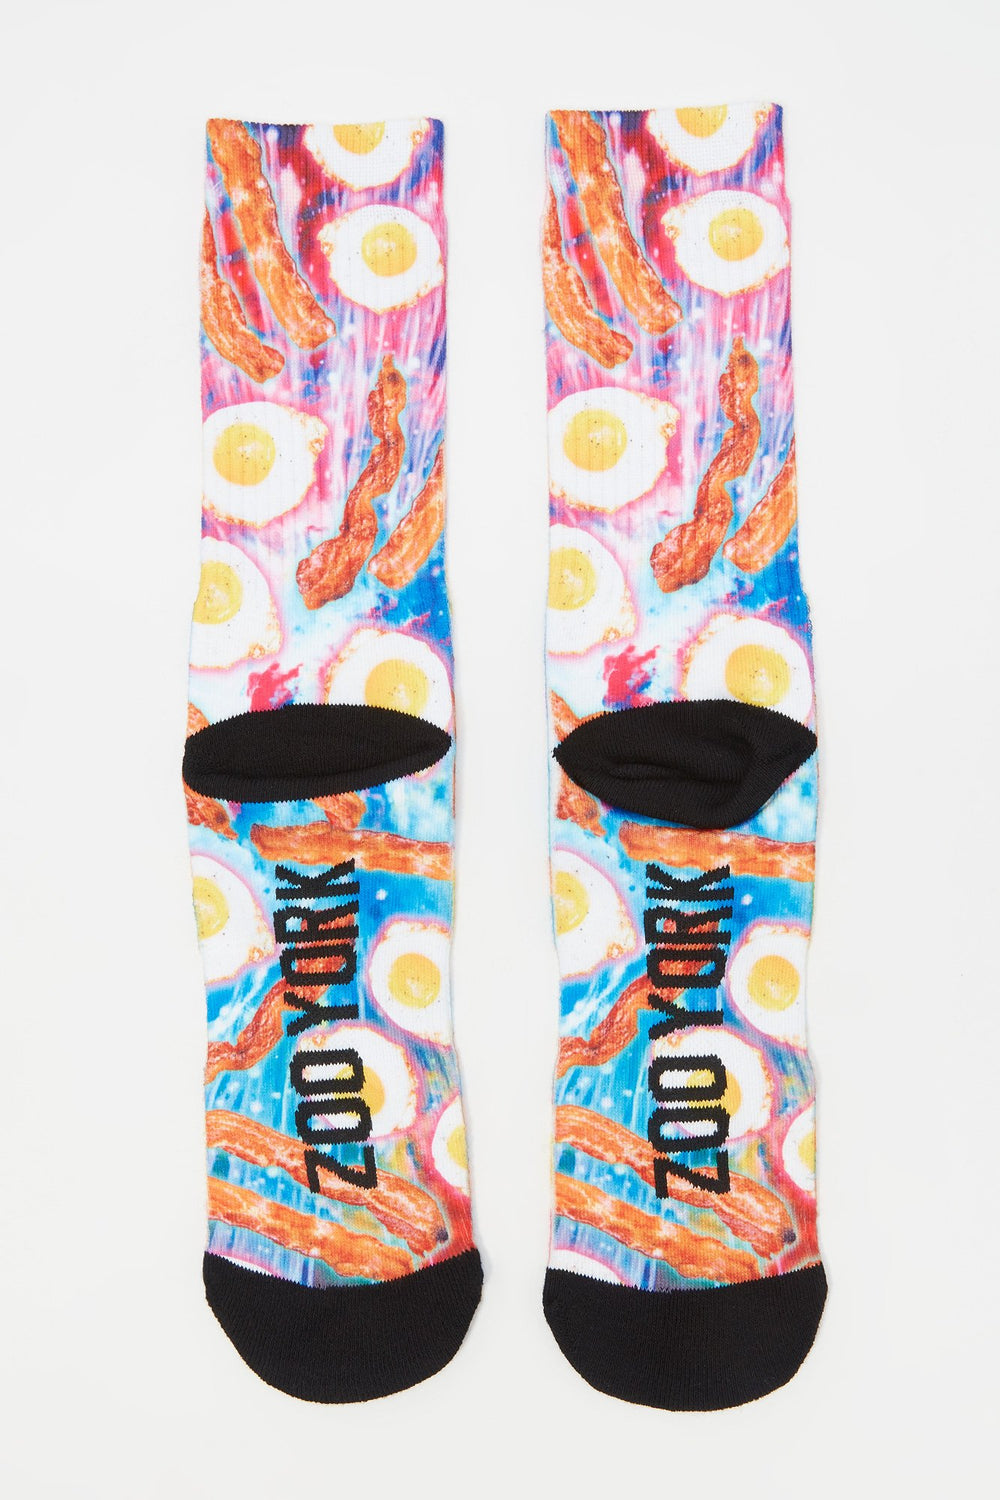 Zoo York Mens Egg and Bacon Crew Socks White